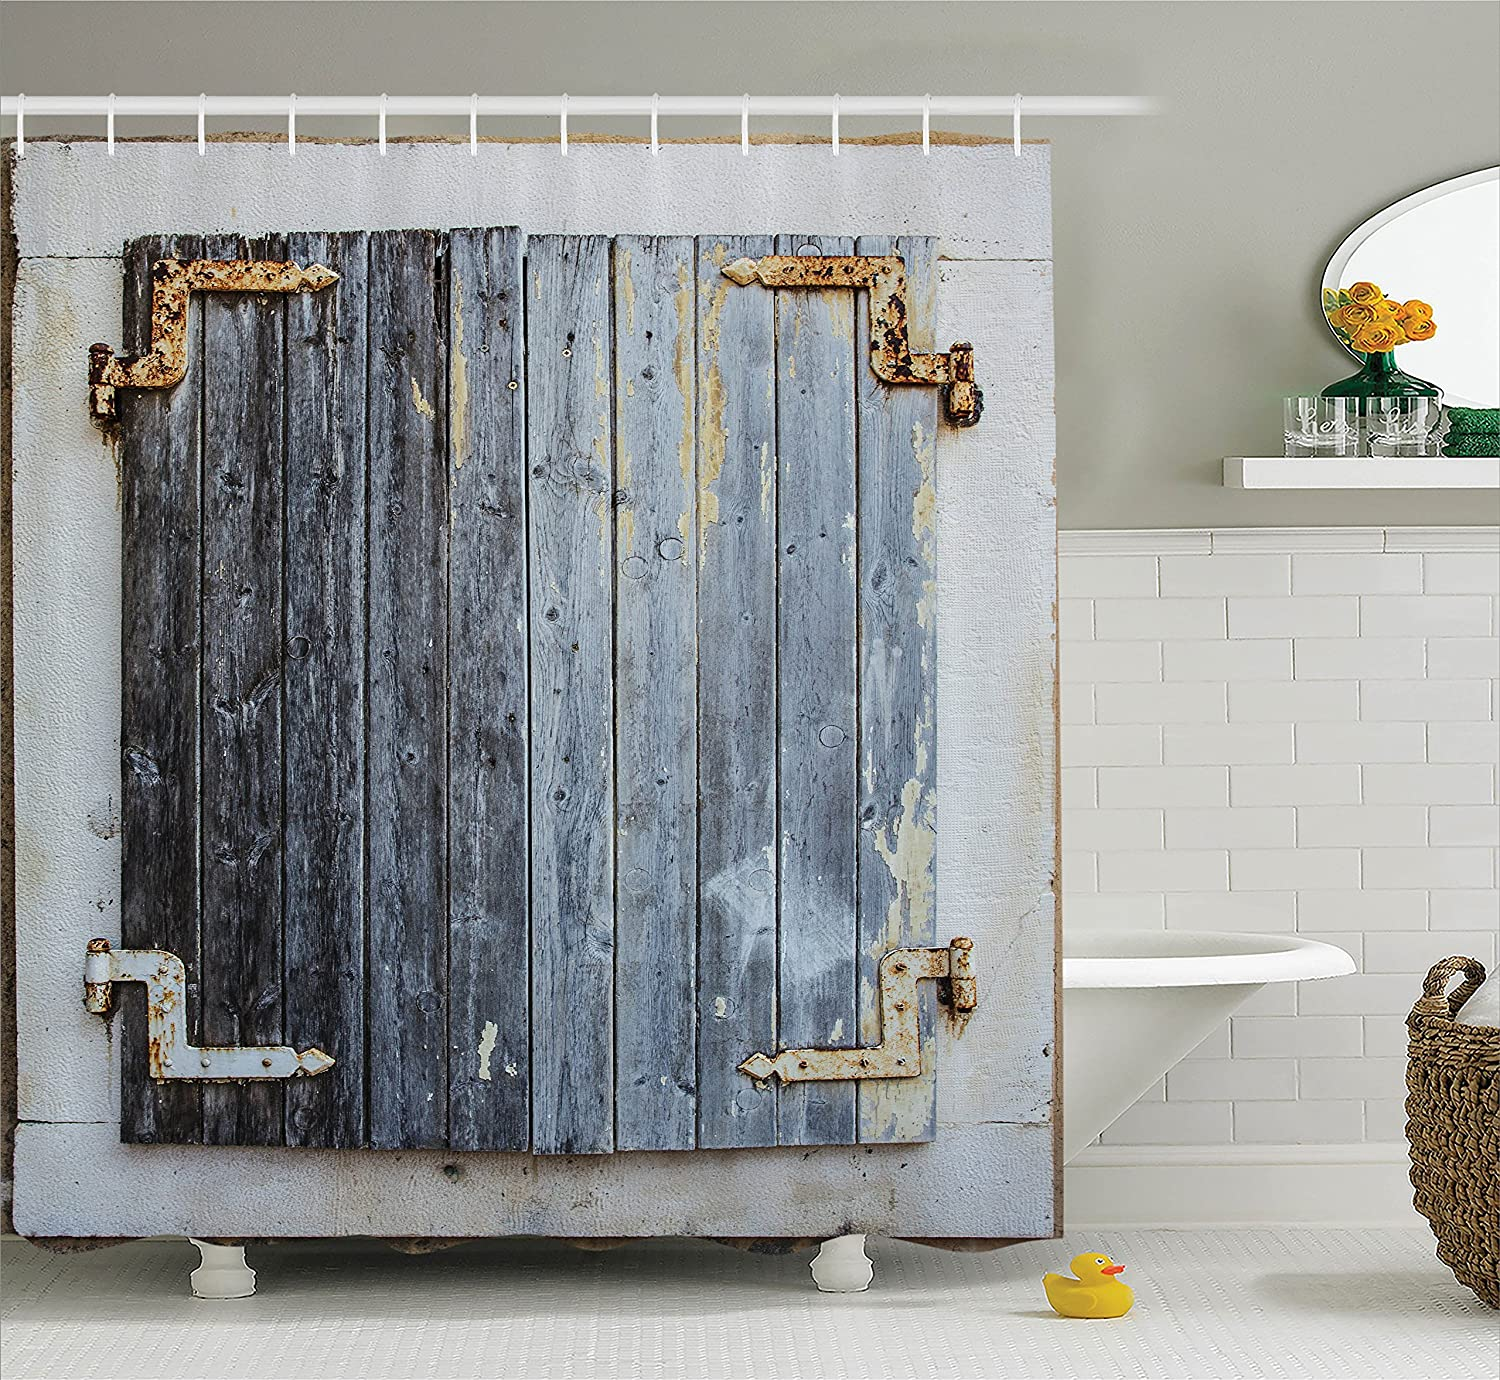 Ambesonne Shutters Decor Shower Curtain Set, Rustic Wooden Window Shutters with Shabby Paint Rusty Antique Traditional Village Picture, Bathroom Accessories, 69W X 70L Inches, Blue